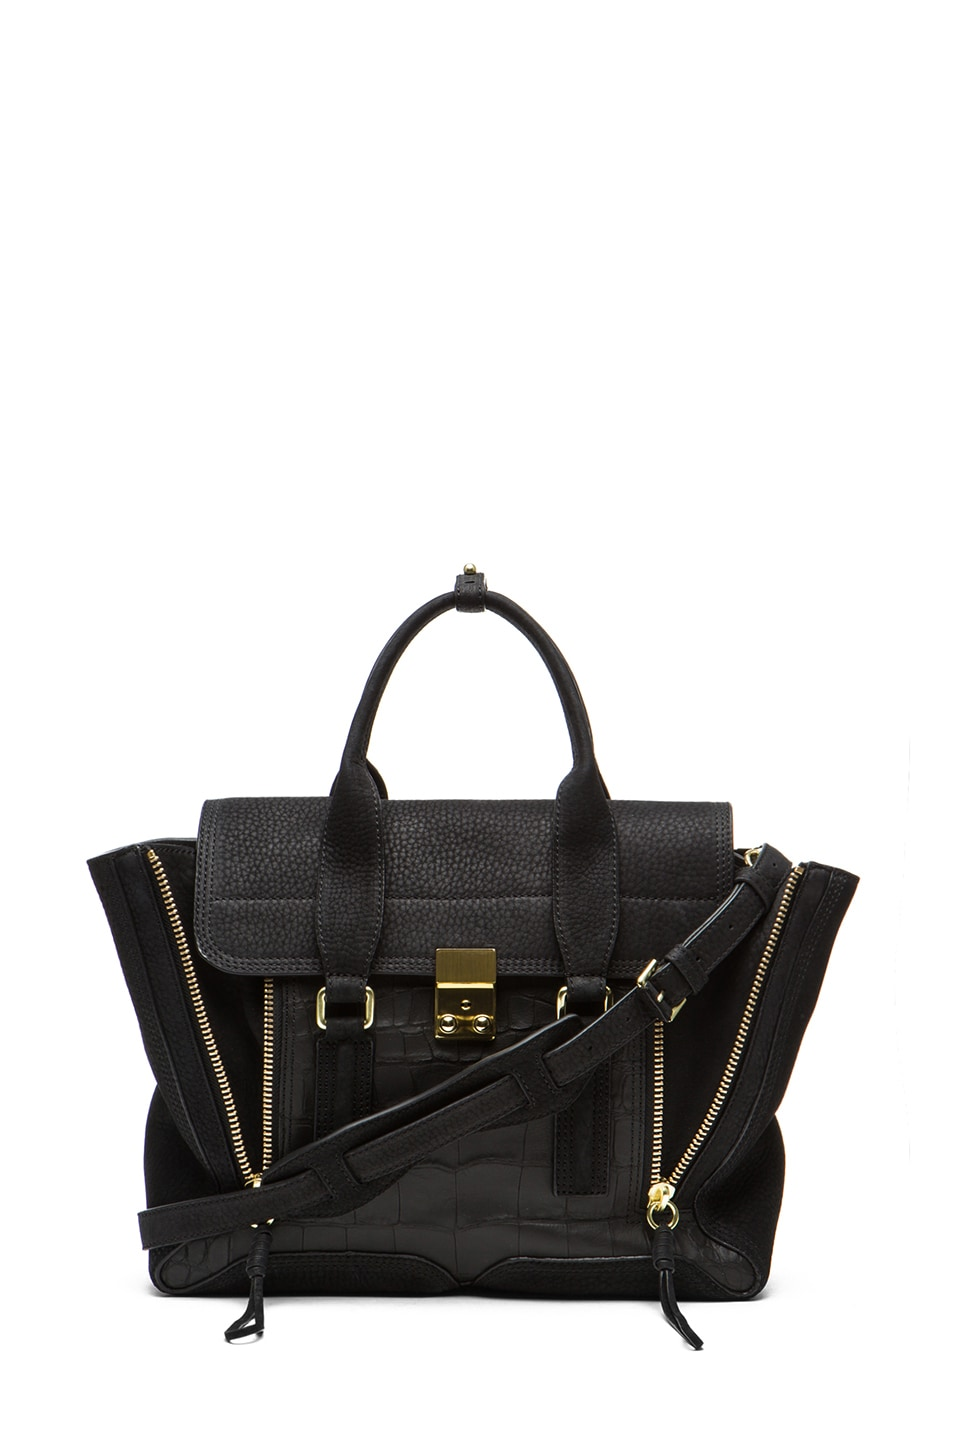 Image 1 of 3.1 phillip lim Medium Pashli Trapeze in Black Croc